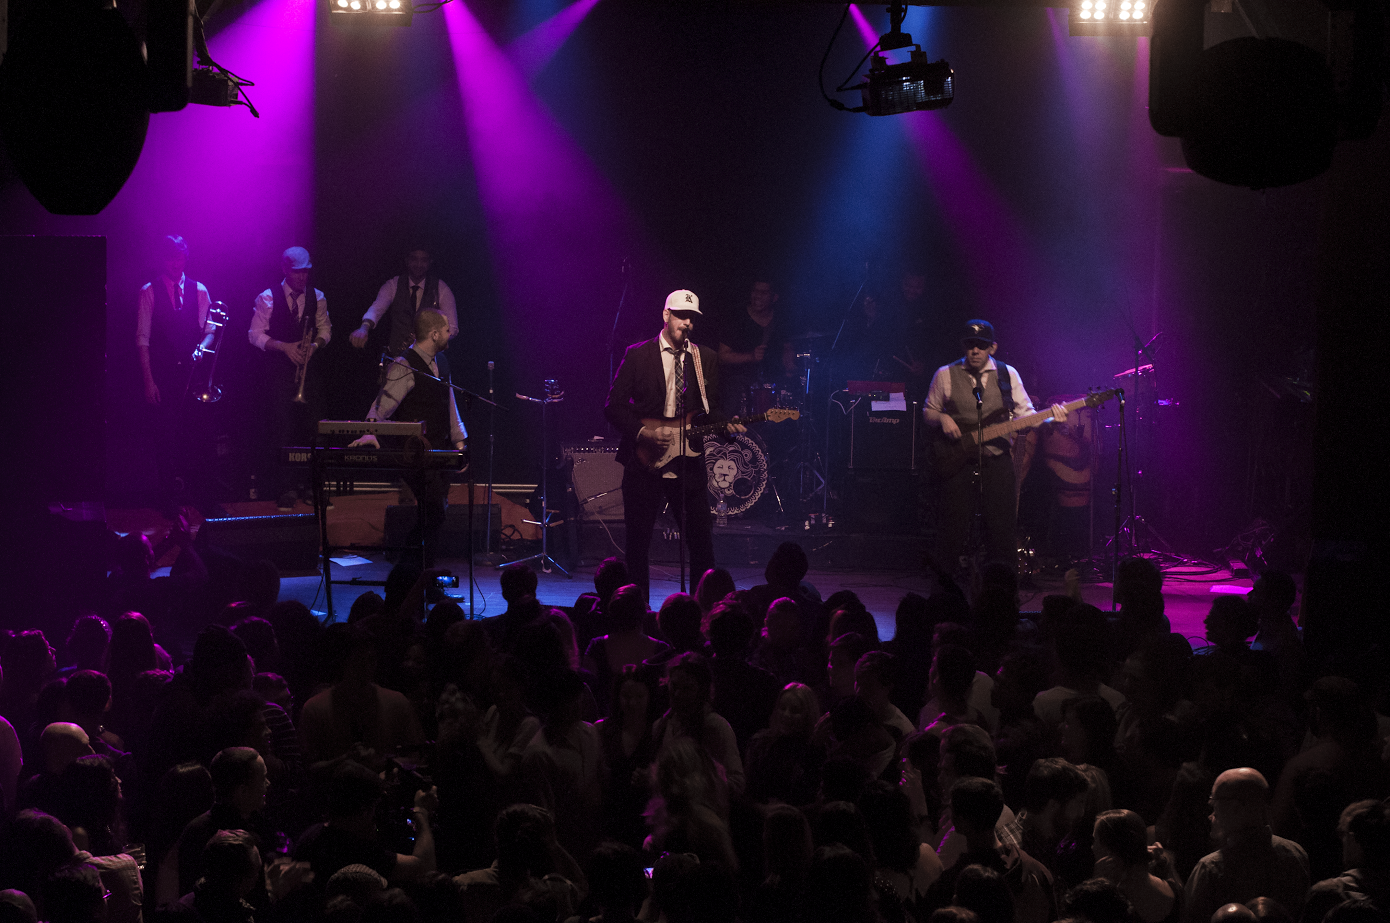 KCLR @ The Mod Club Nov 15, 2014